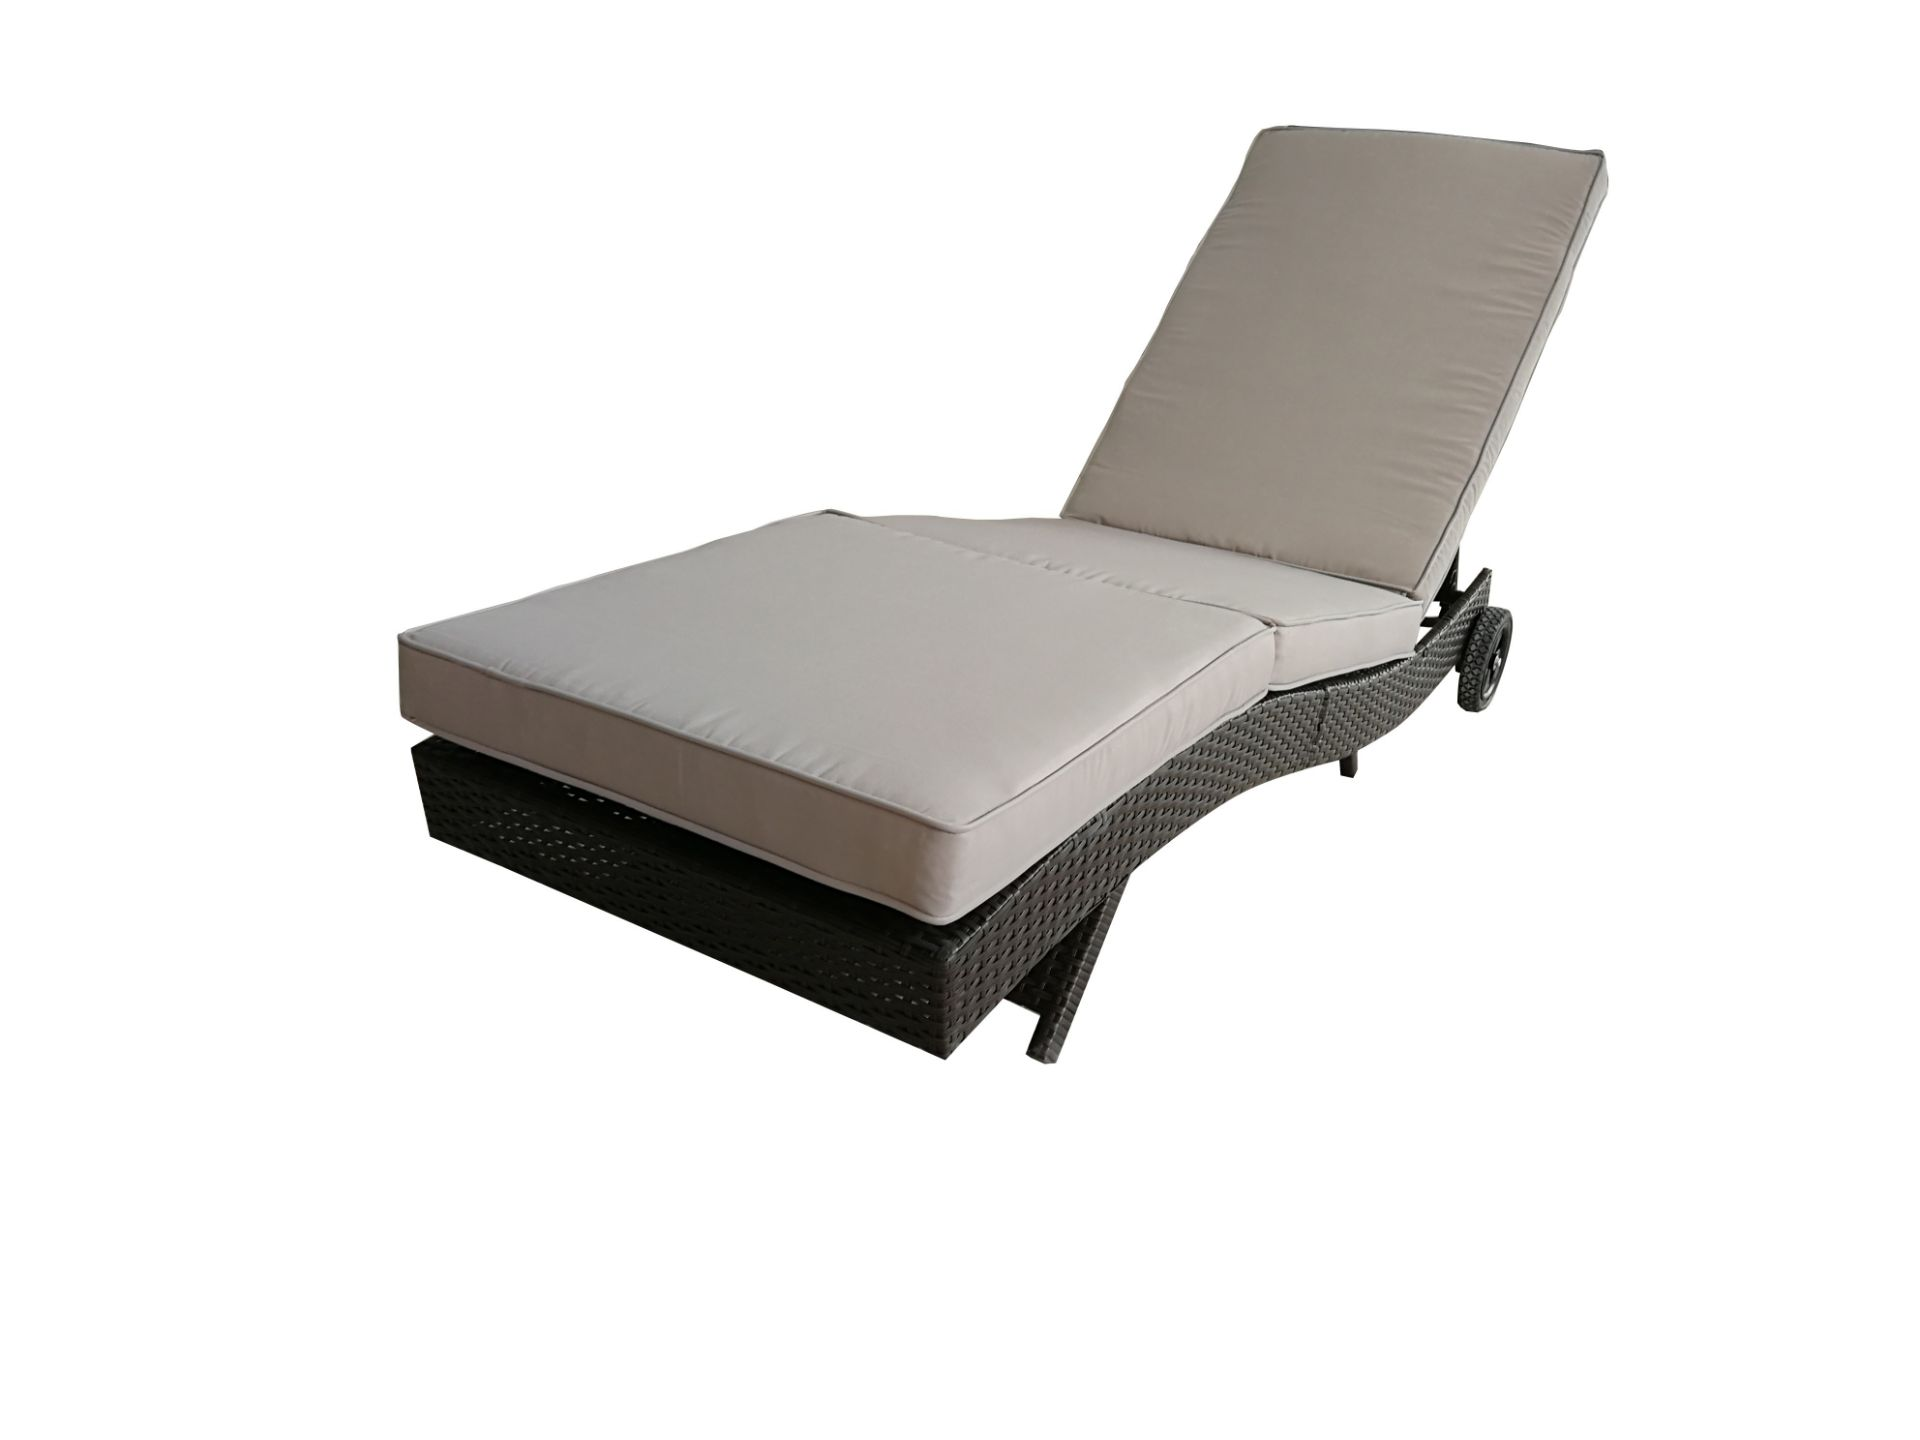 + VAT Brand New Chelsea Garden Company Dark Brown Rattan Sunbed - Steel Framed - Include Cushion - - Image 5 of 5